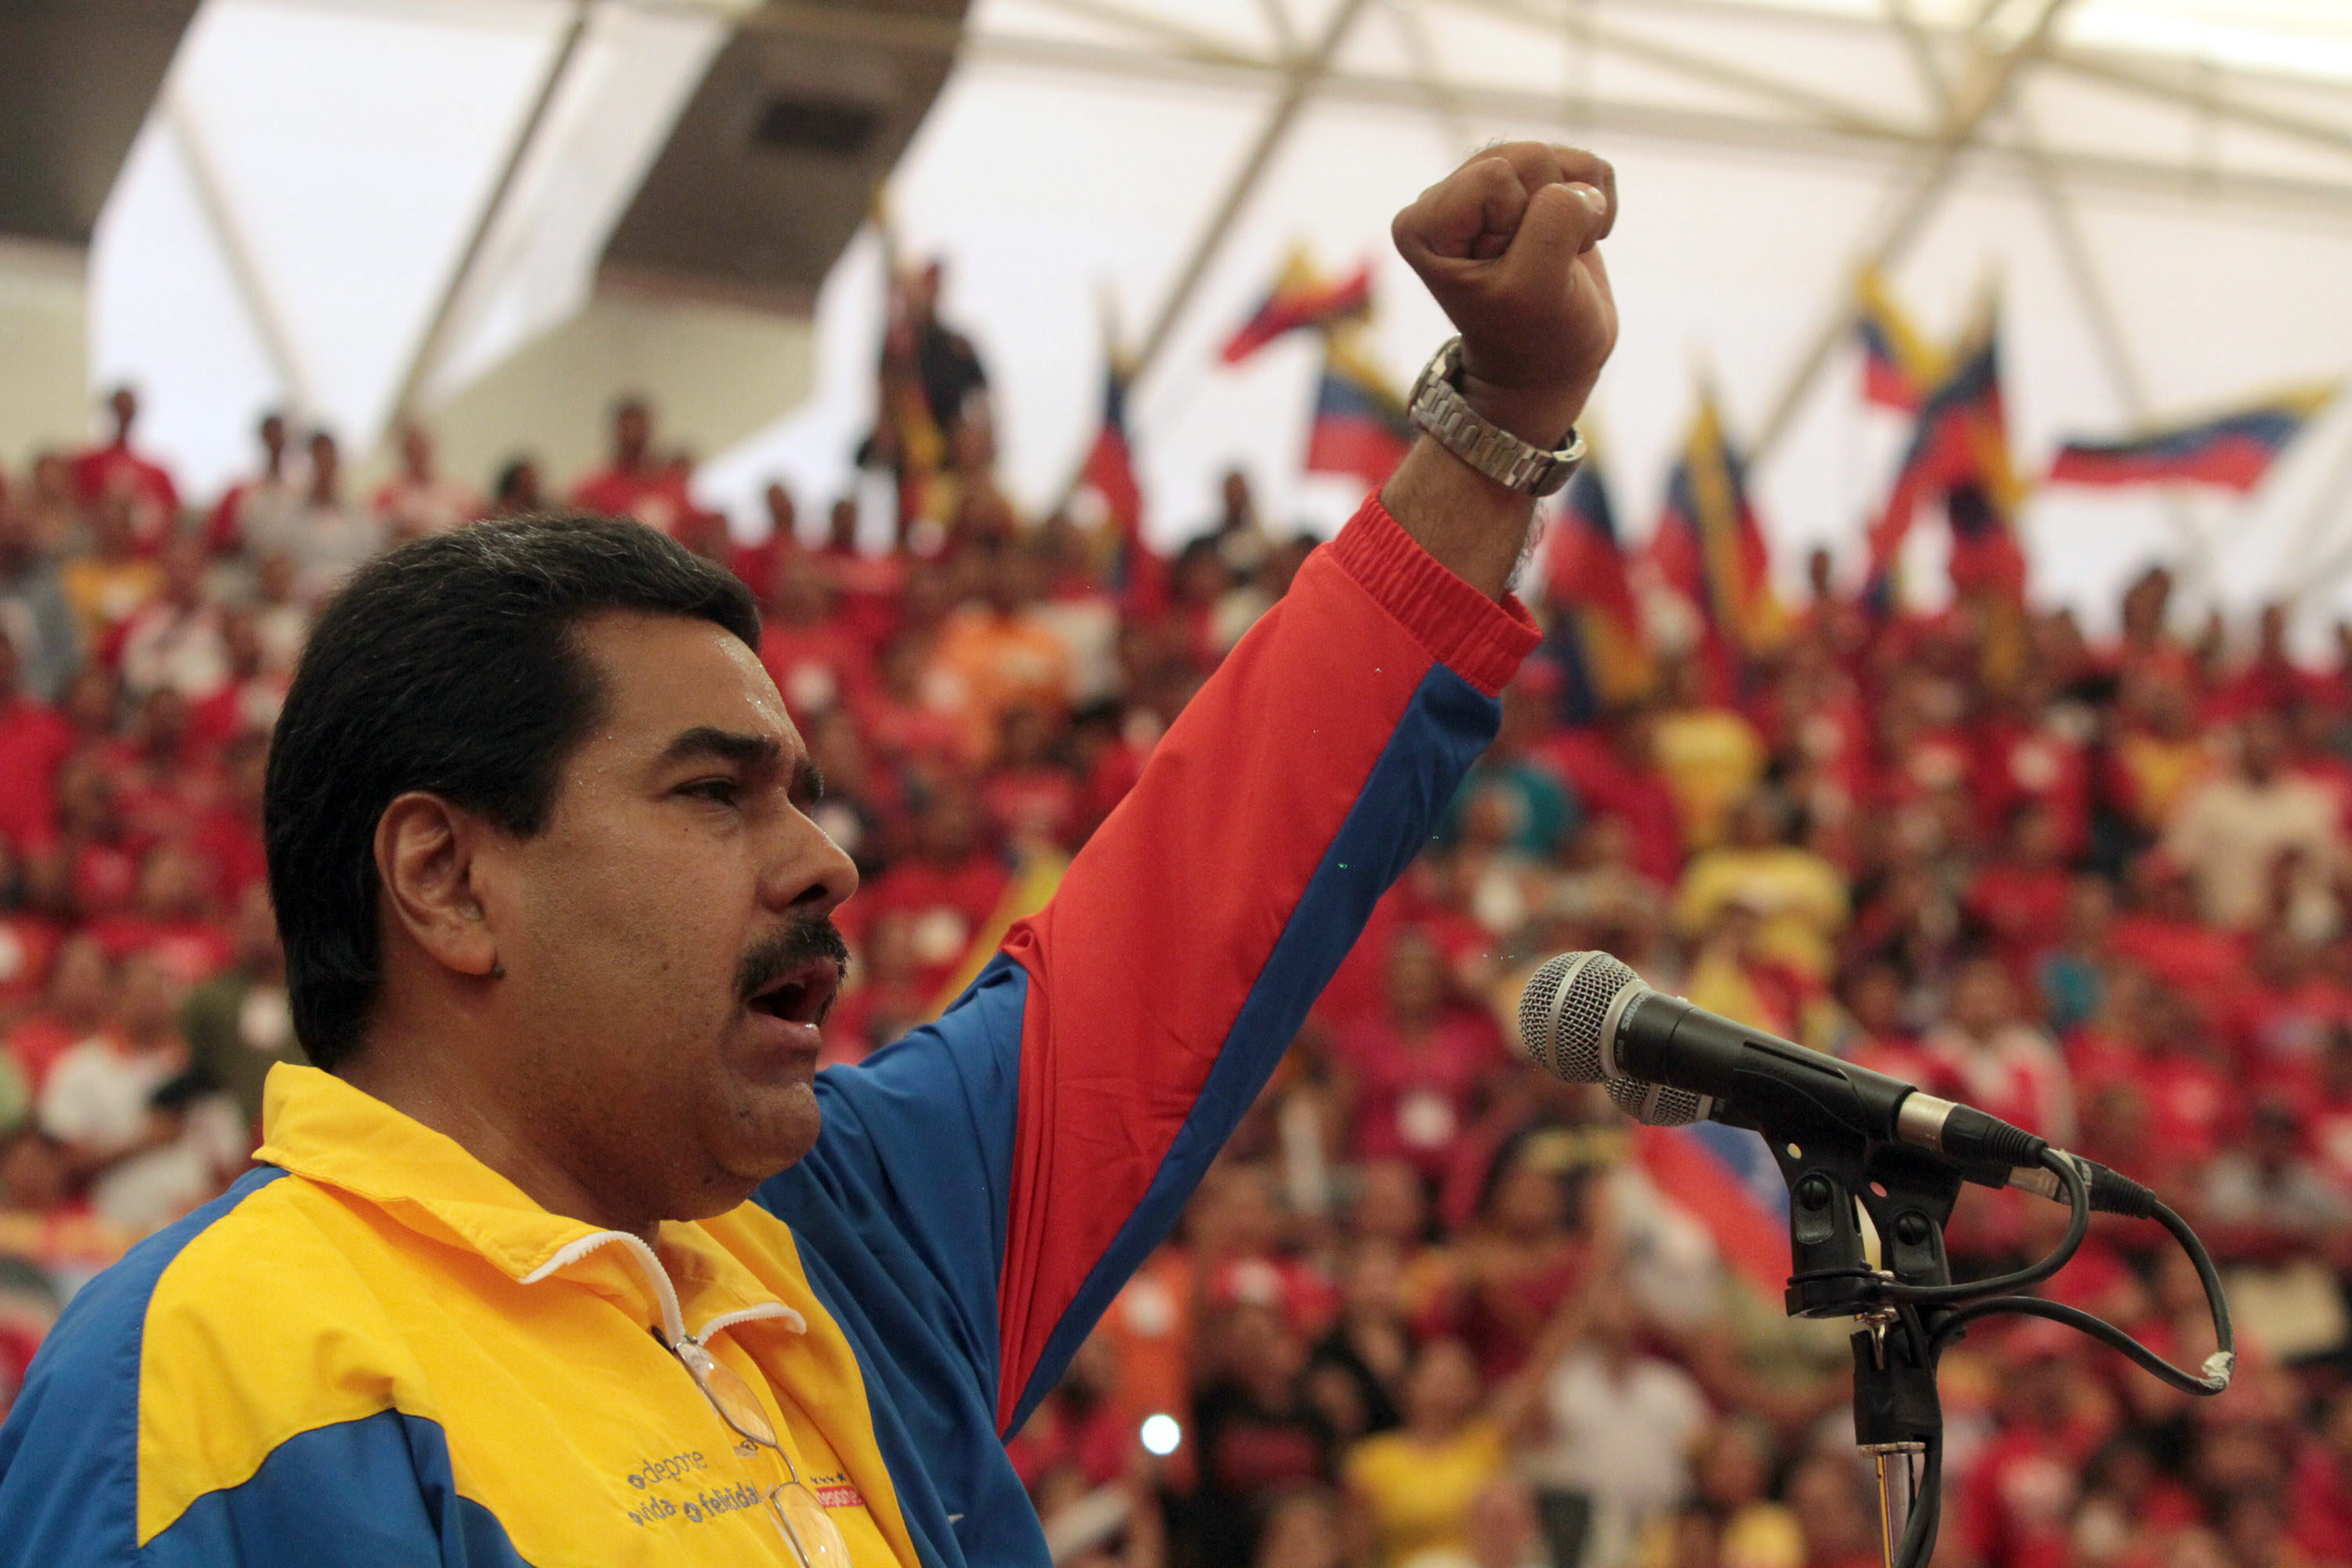 Support the people's government and Bolivarian revolution.